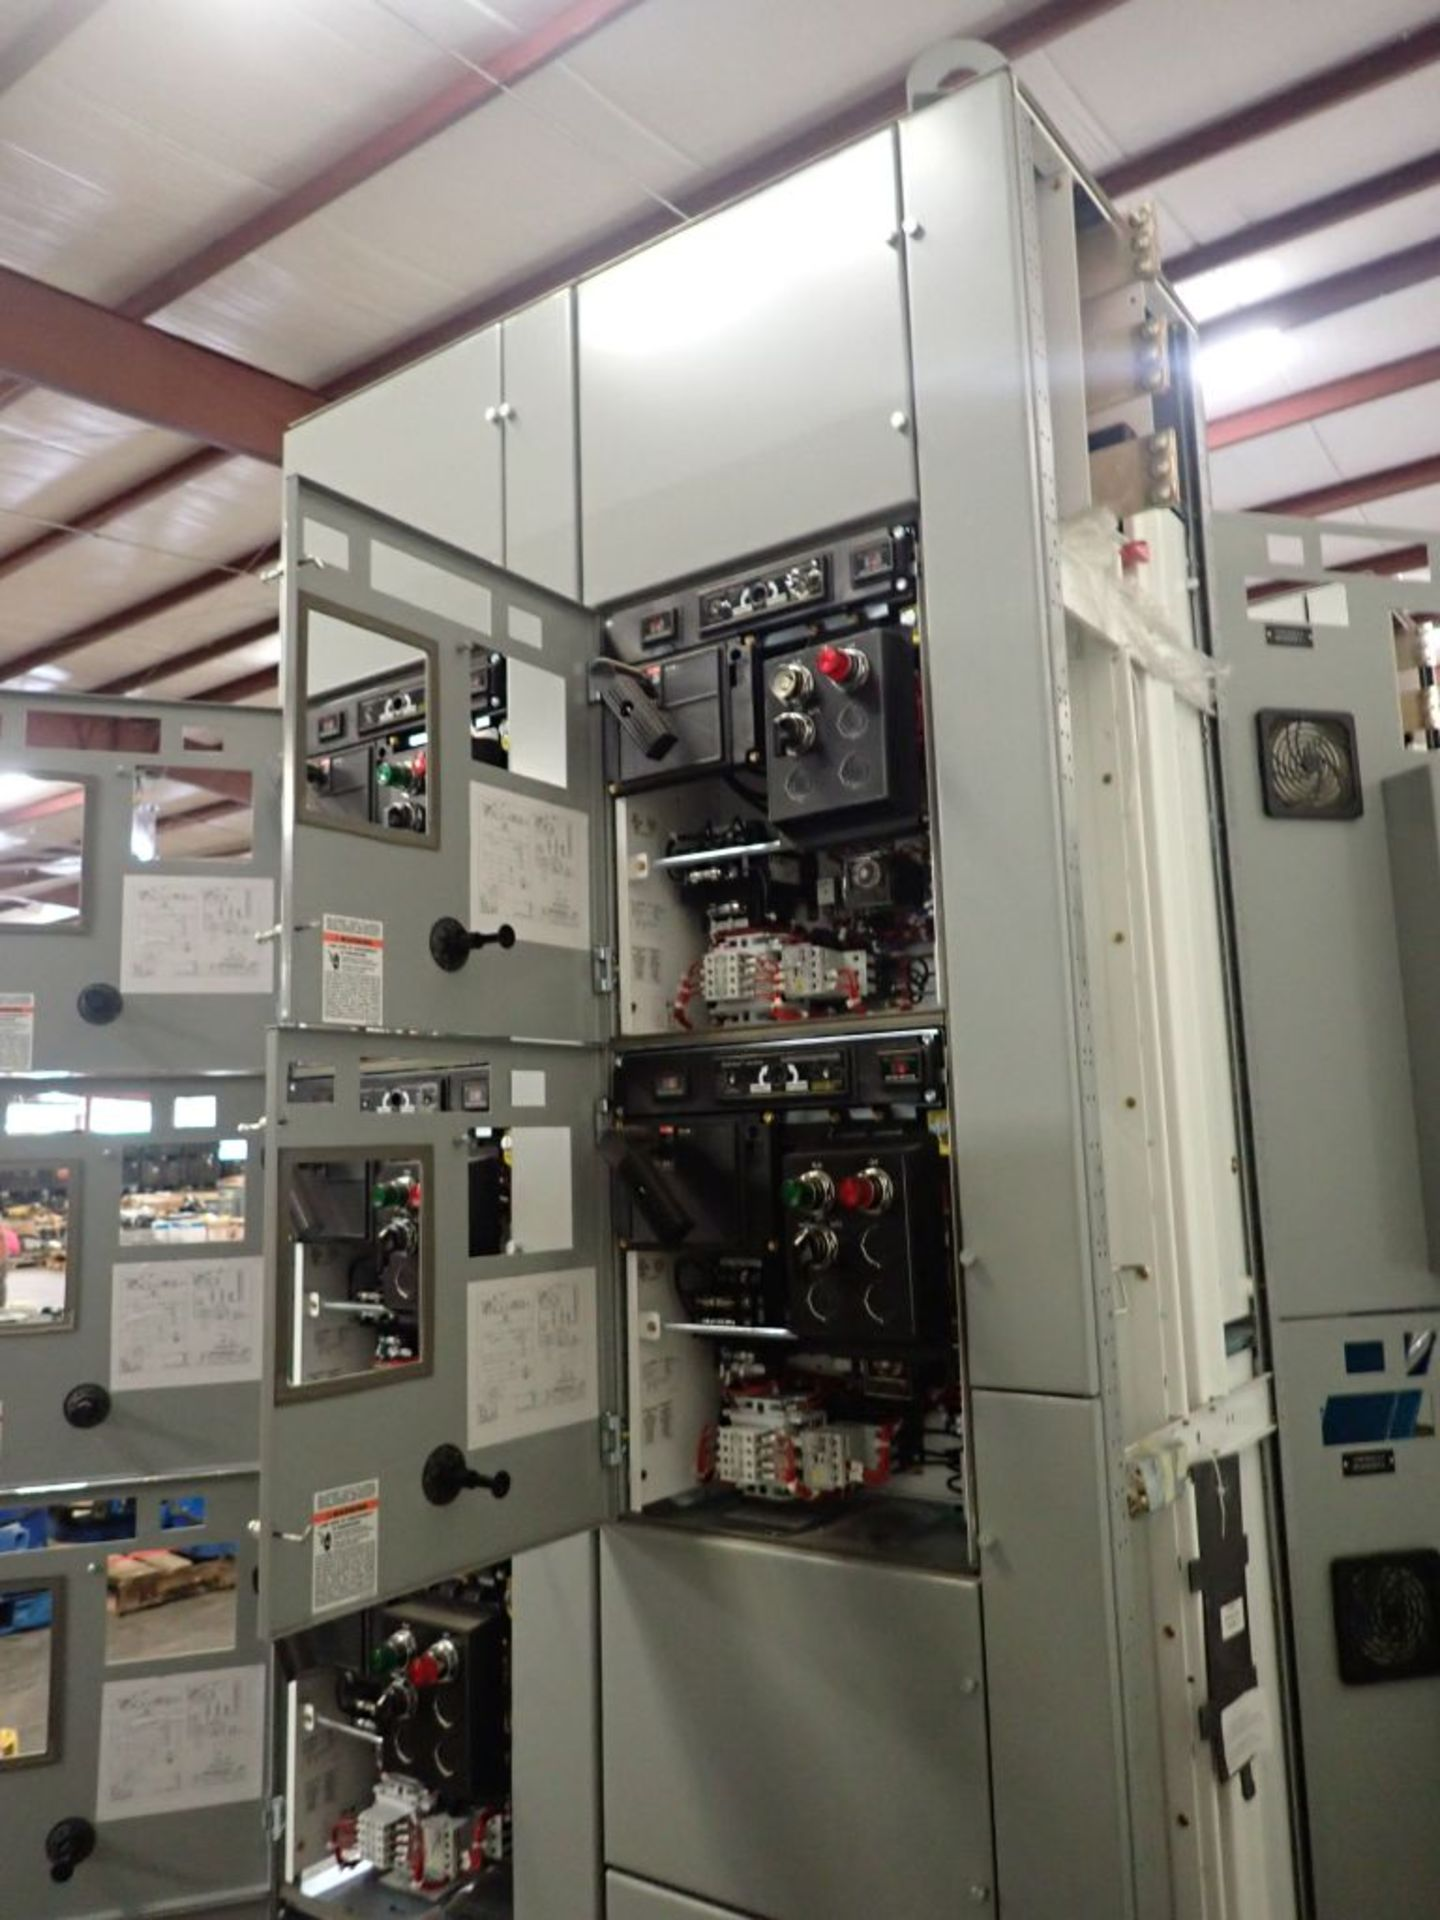 Eaton Freedom 2100 Series Motor Control Center | (2) F206-7A-10HP; (3) F206-15A-10HP; (1) FDRB-100A; - Image 43 of 87